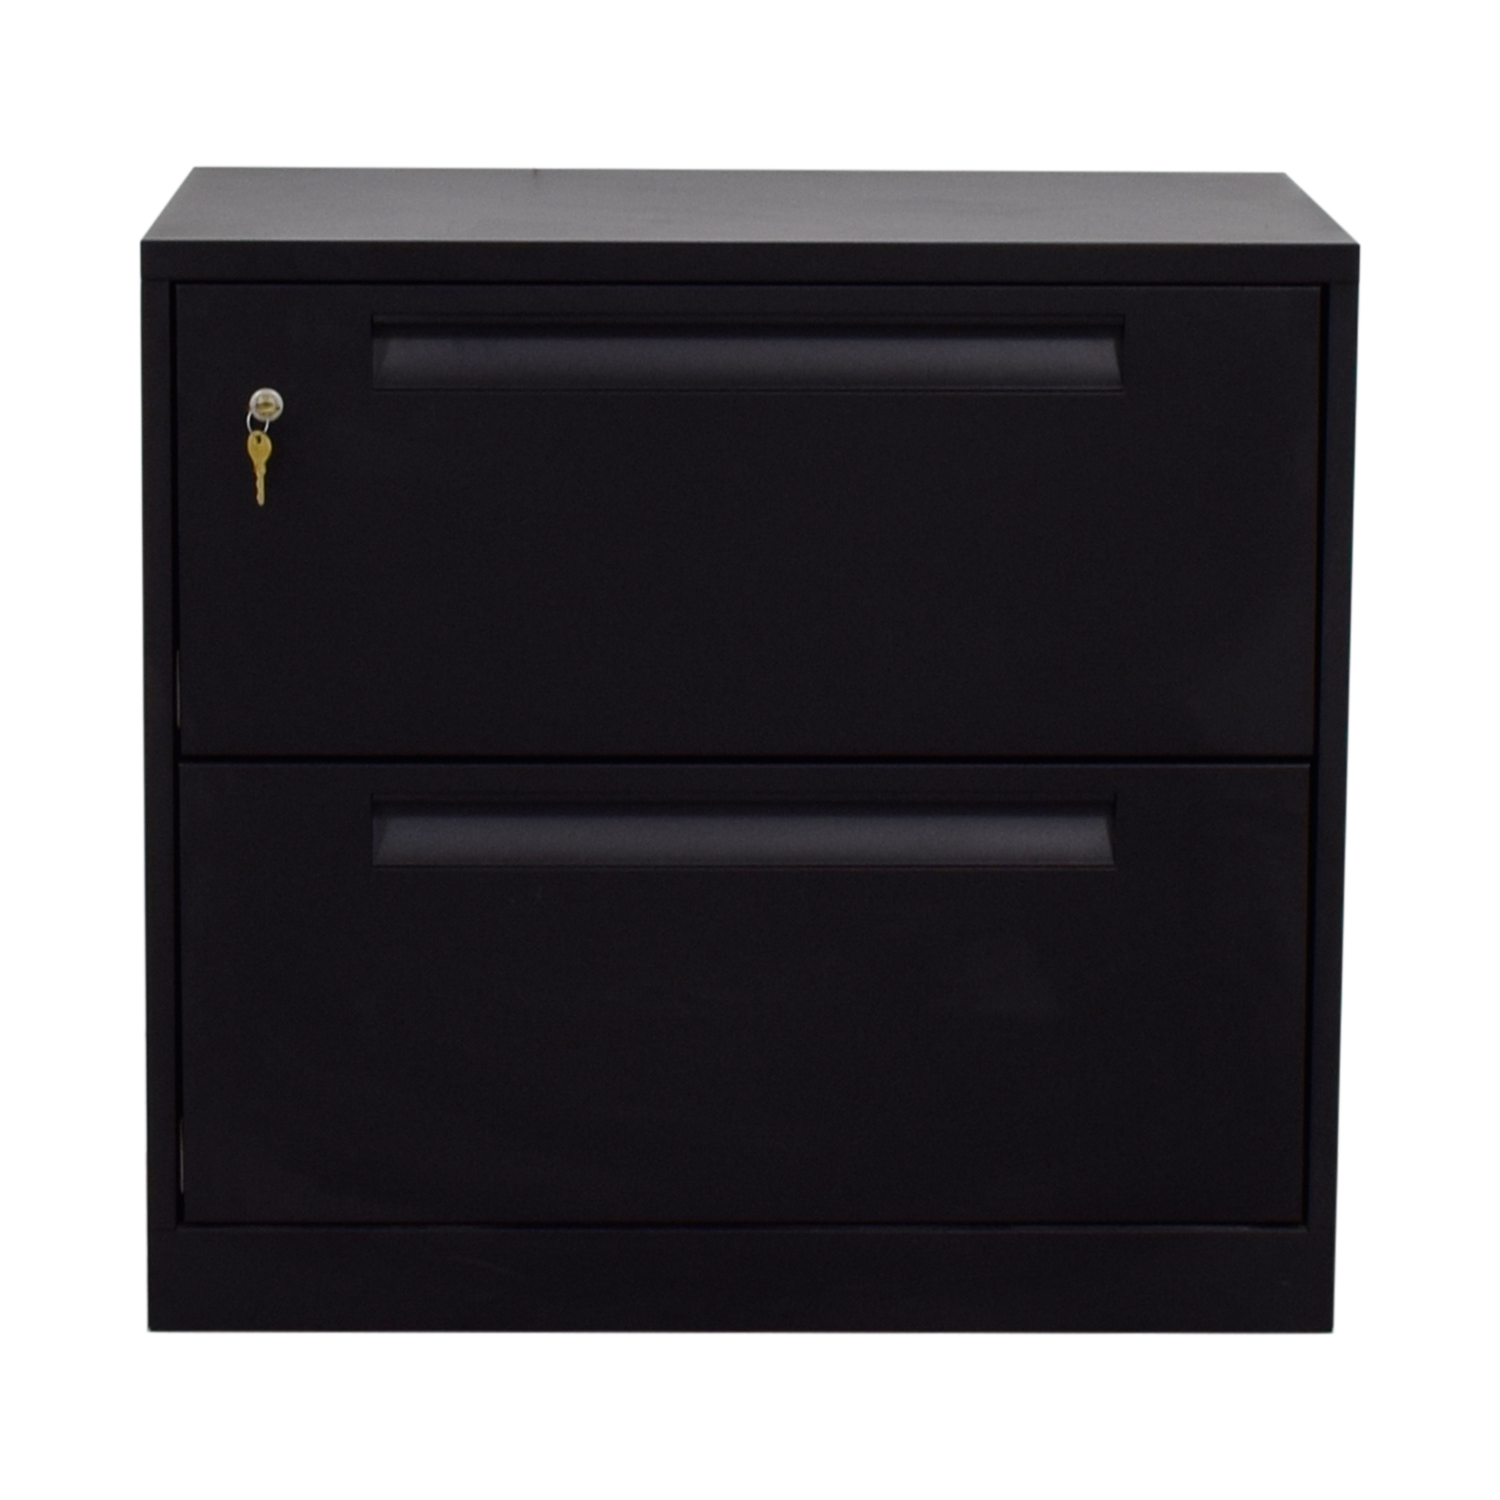 Steelcase Black Lateral Two-Drawer File Cabinet / Filing & Bins